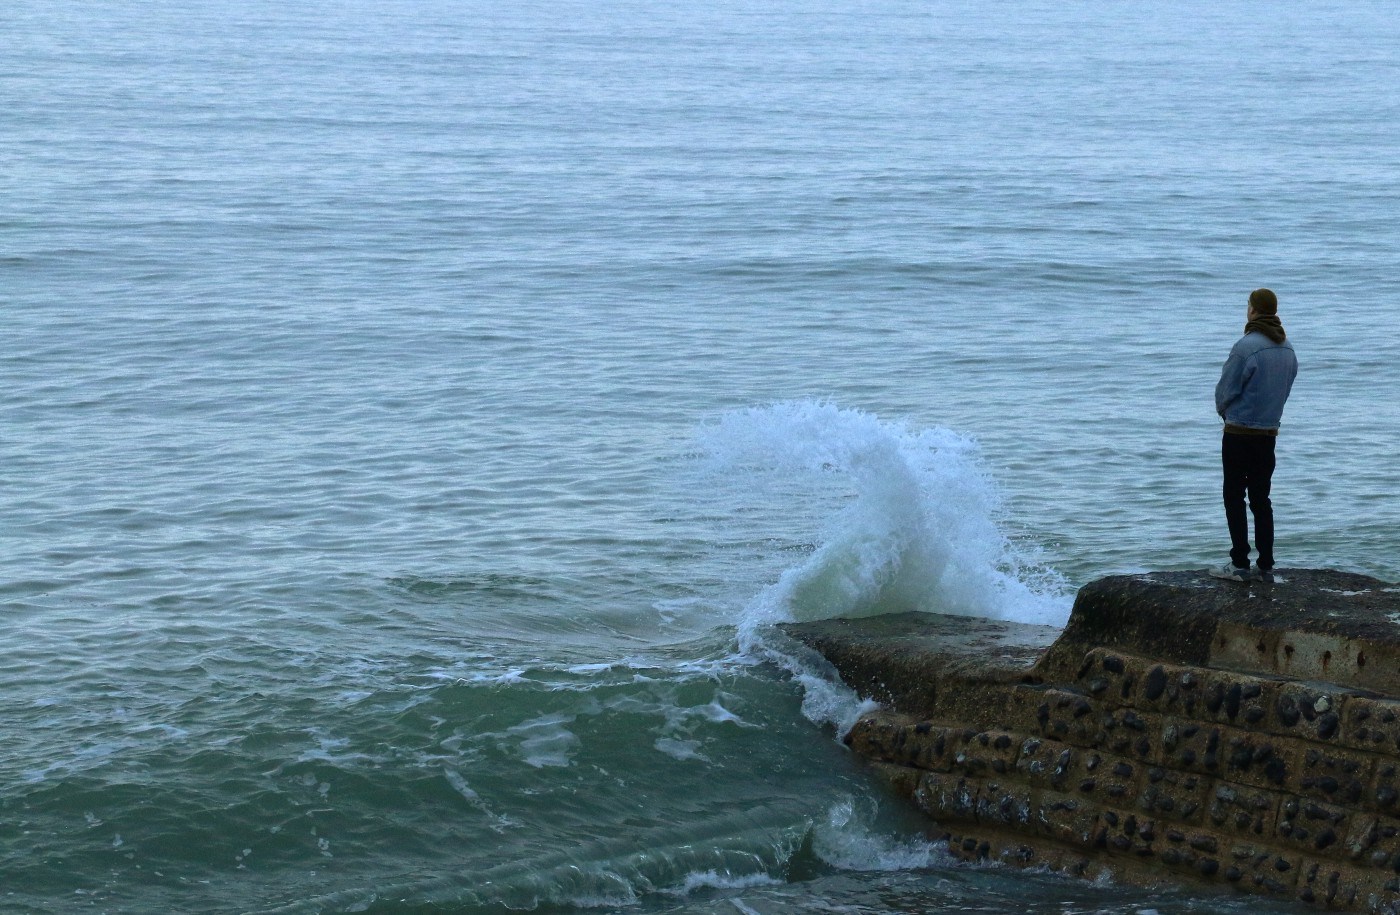 Person standing on a rock jetty peering out into to rough sea.